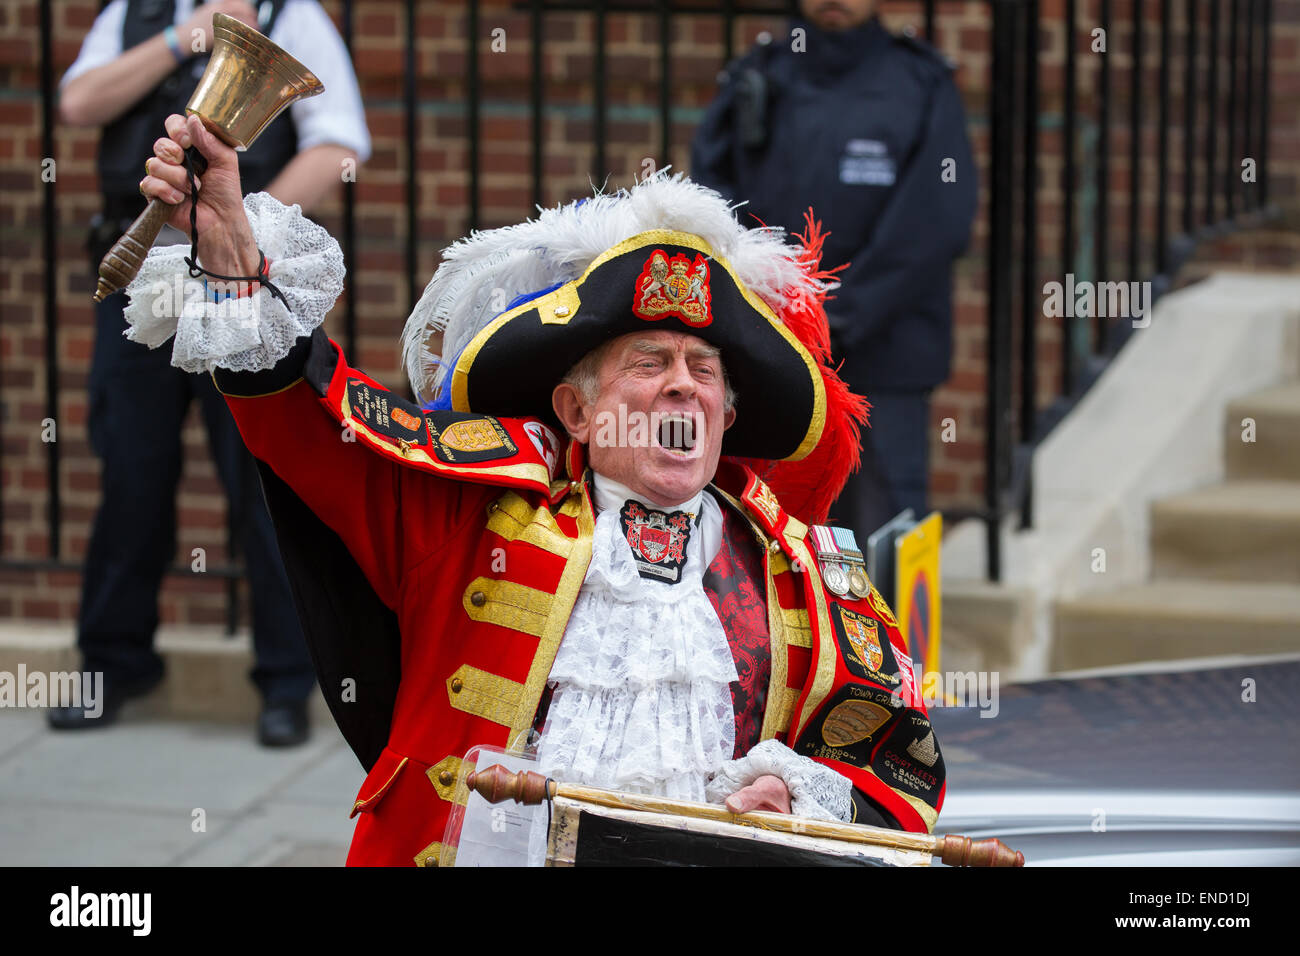 The town crier from Great Baddow in Essex proclaims the birth of a new royal baby girl for Prince William and Catherine - Stock Image